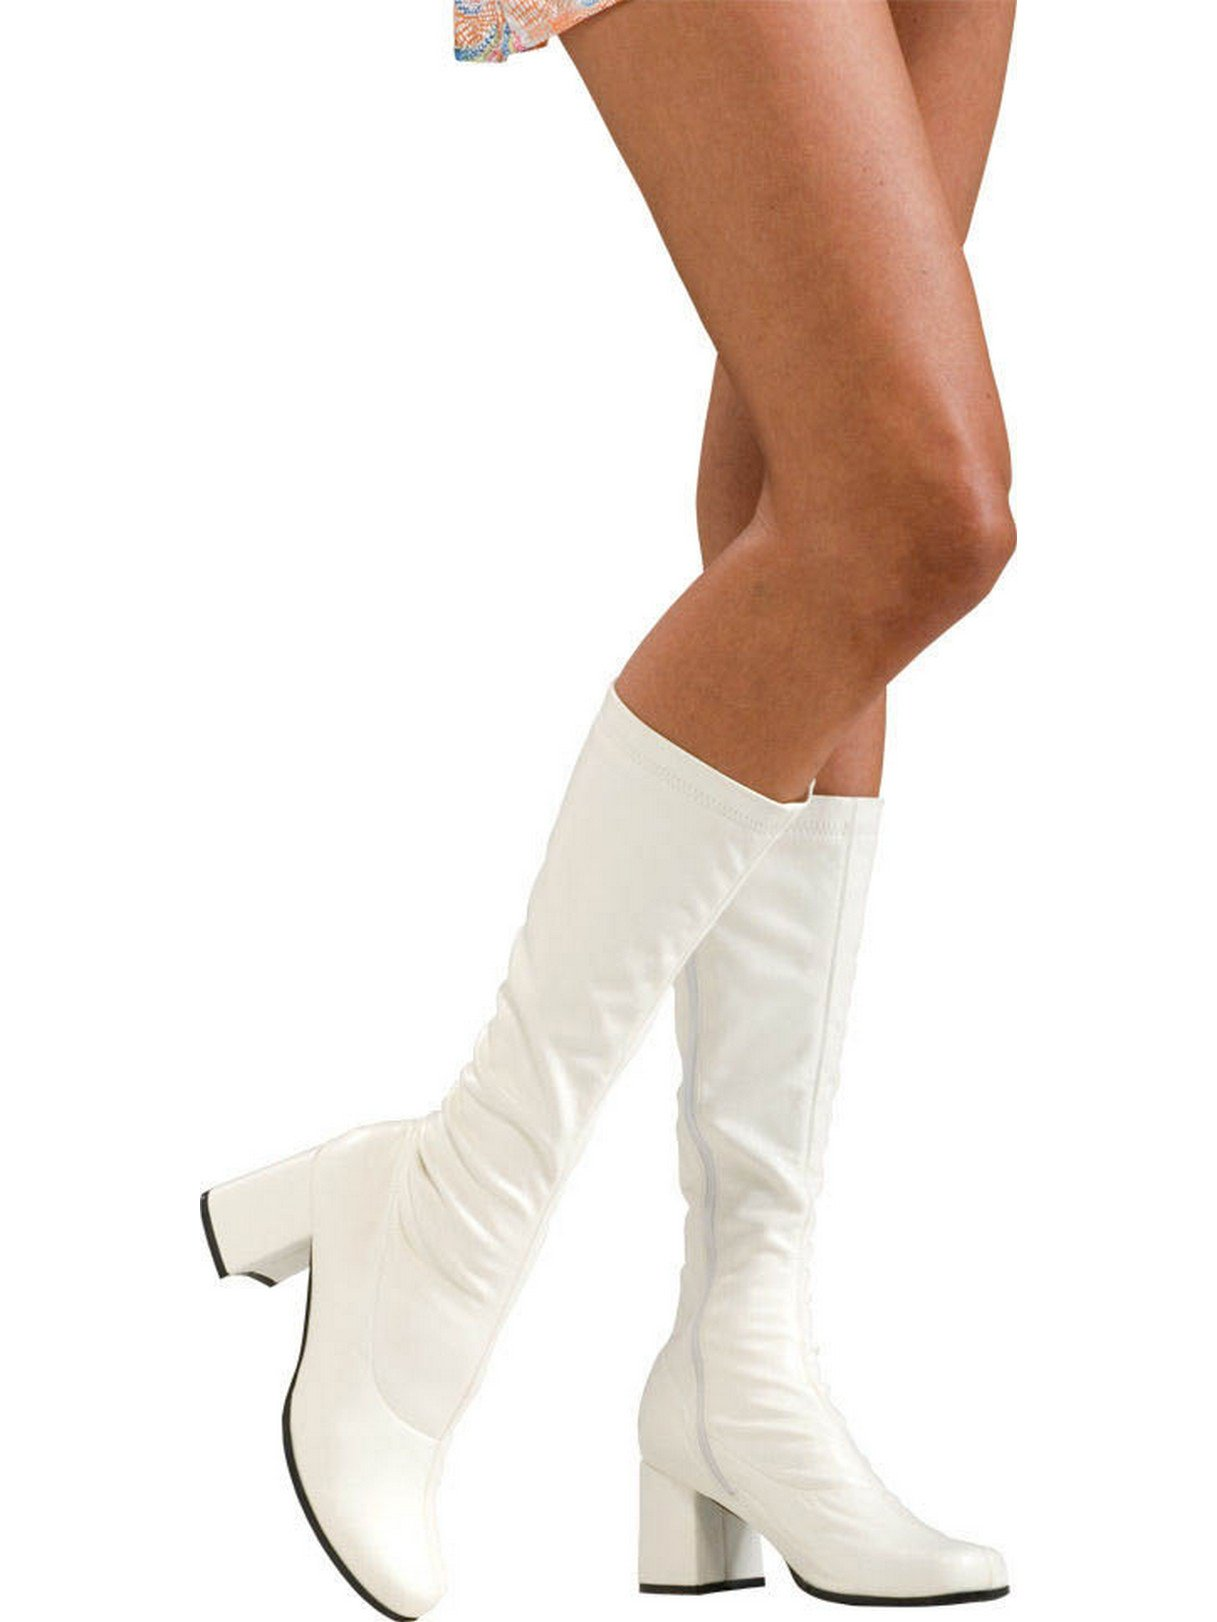 Secret Wishes Go-Go Boots, White, Medium by Secret Wishes